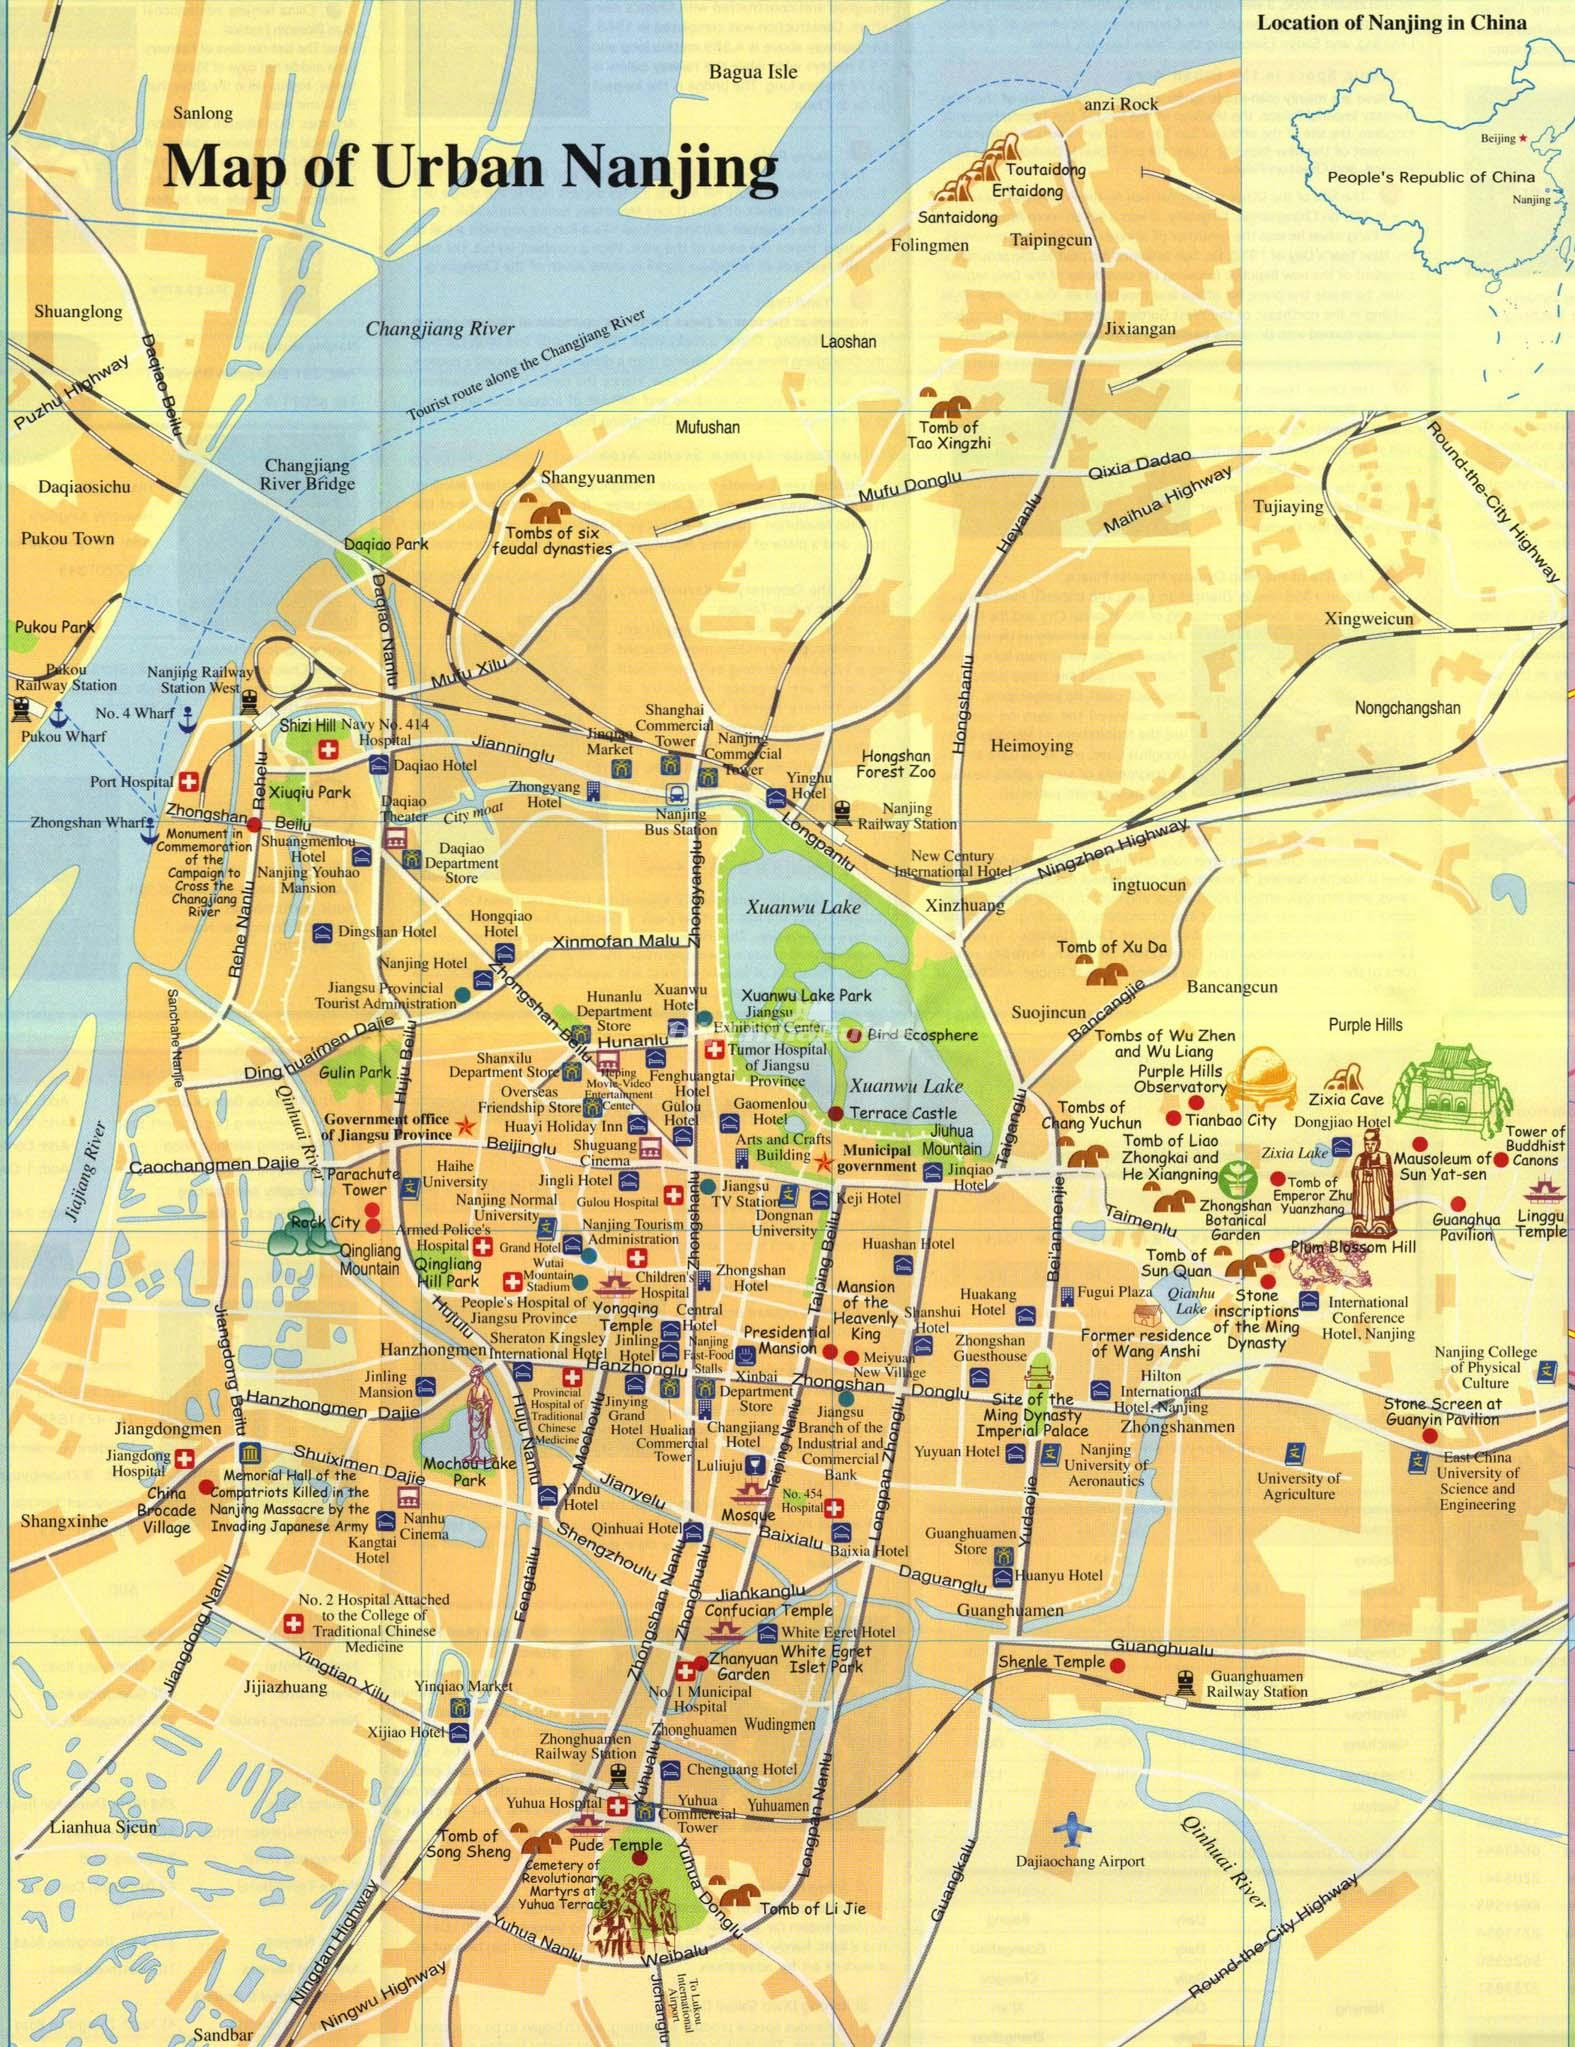 Nanjing City Map Maps Of Nanjing - Nanjing map